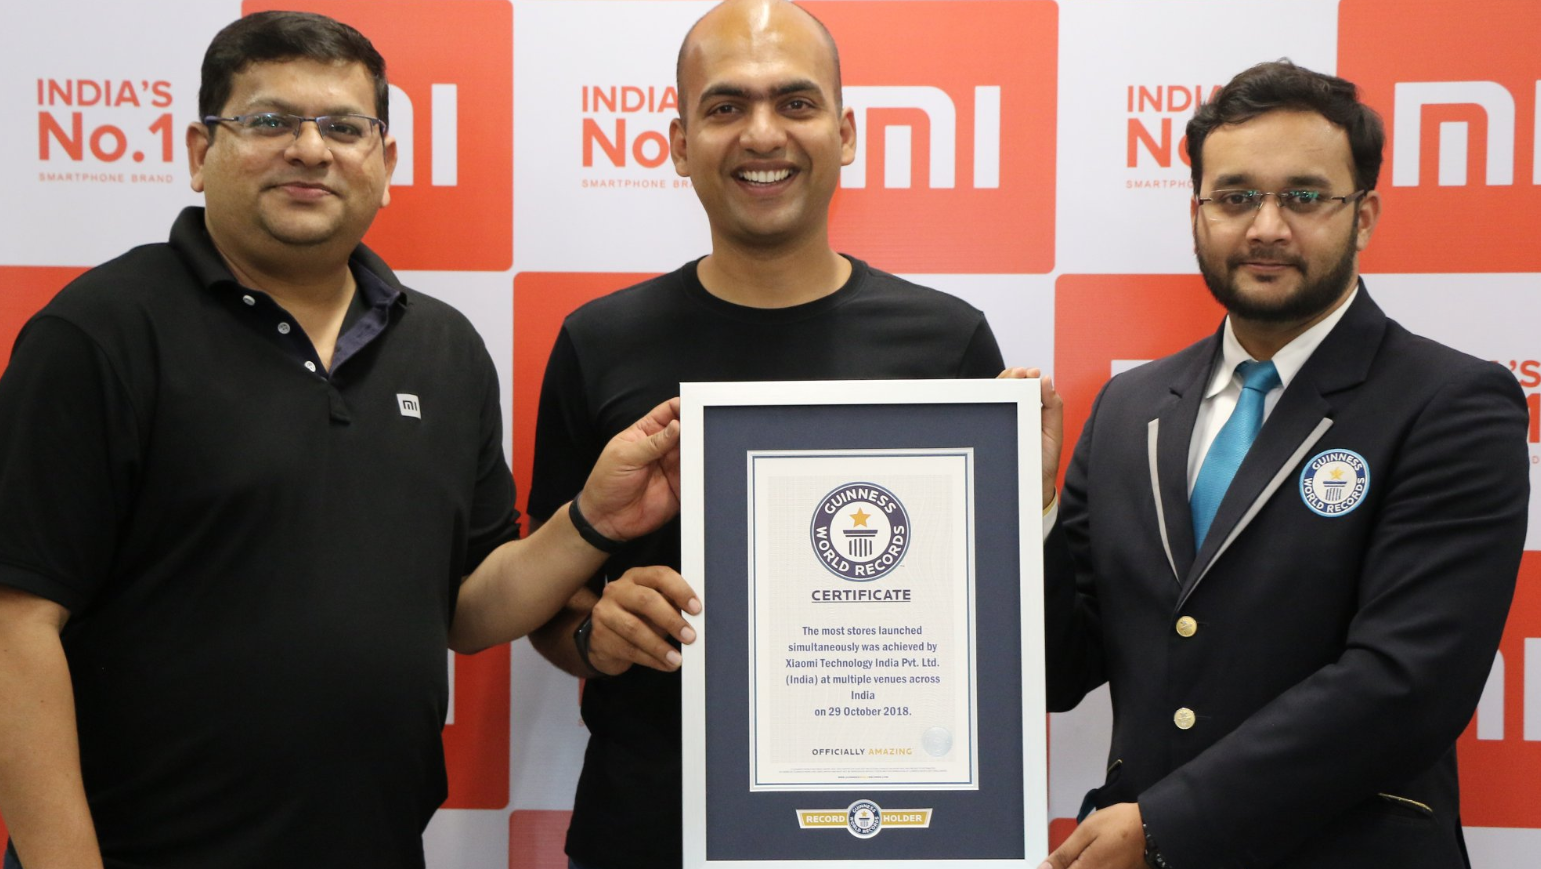 Xiaomi at the same time opened 500 stores - they went to the Guinness Book of Records